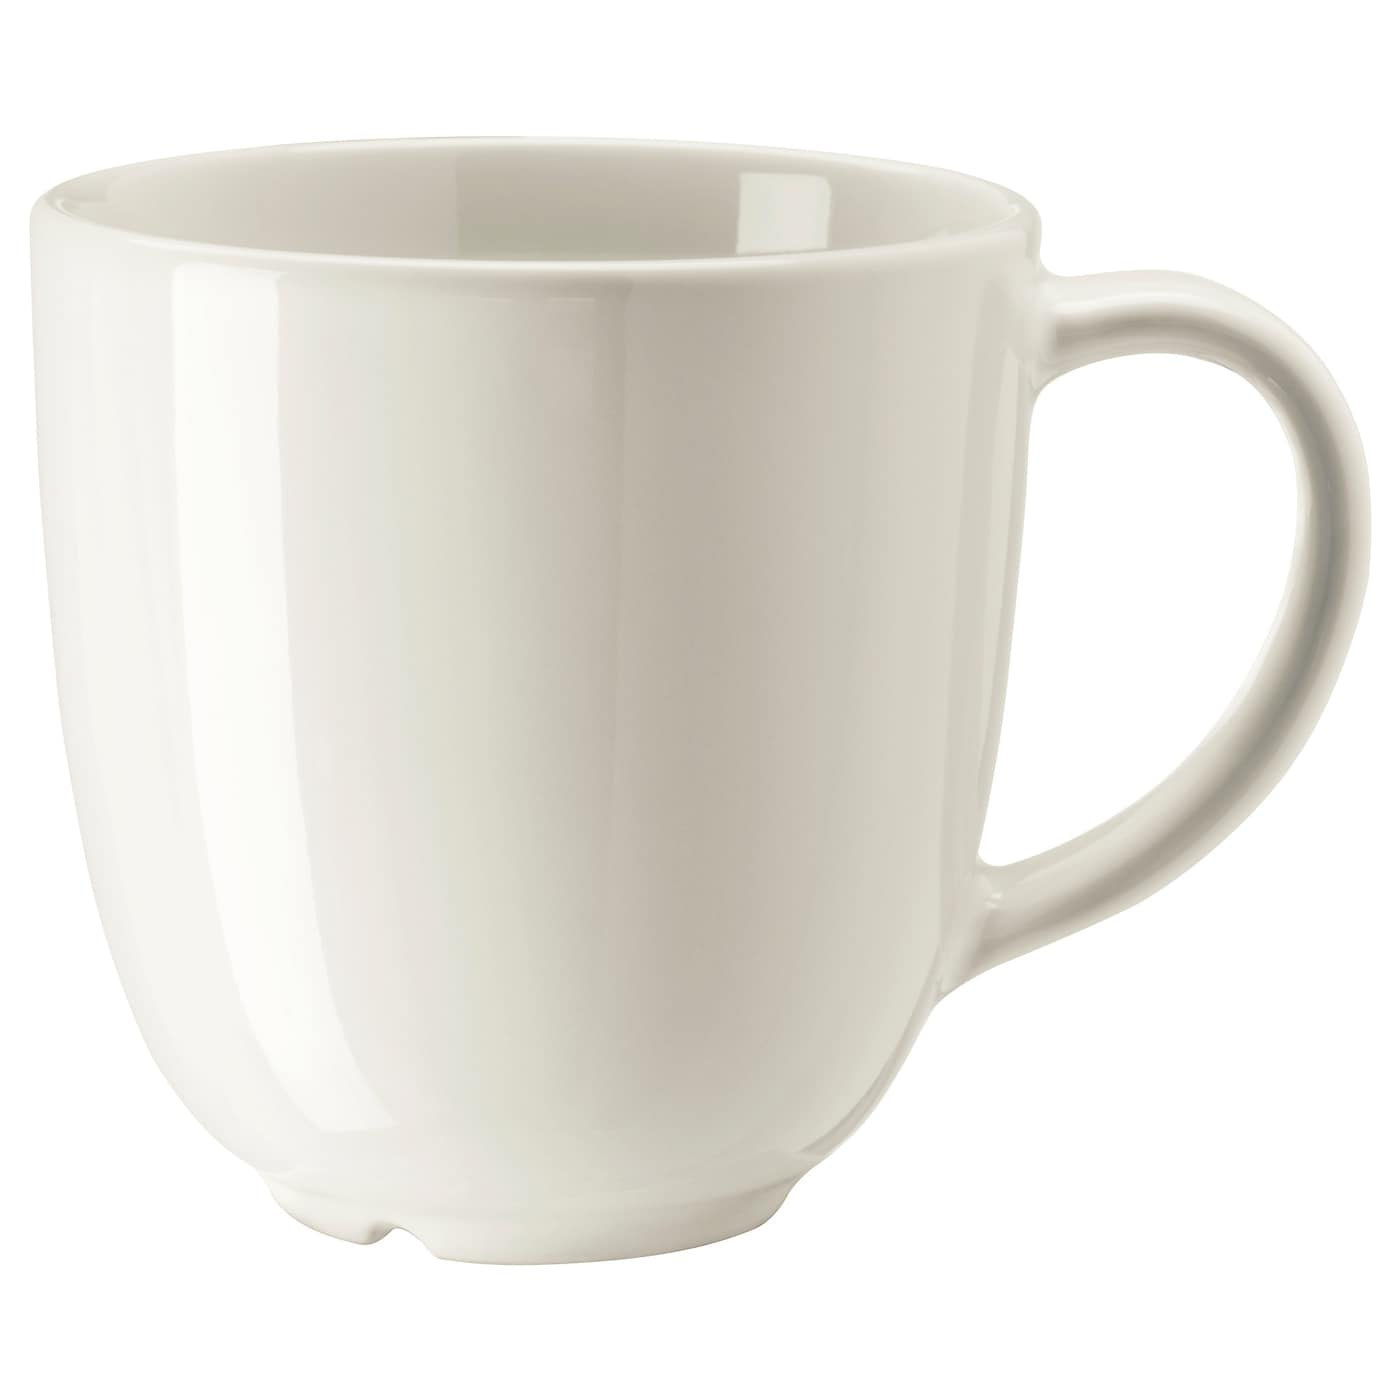 Vardagen Mug Off White 30 Cl Ikea